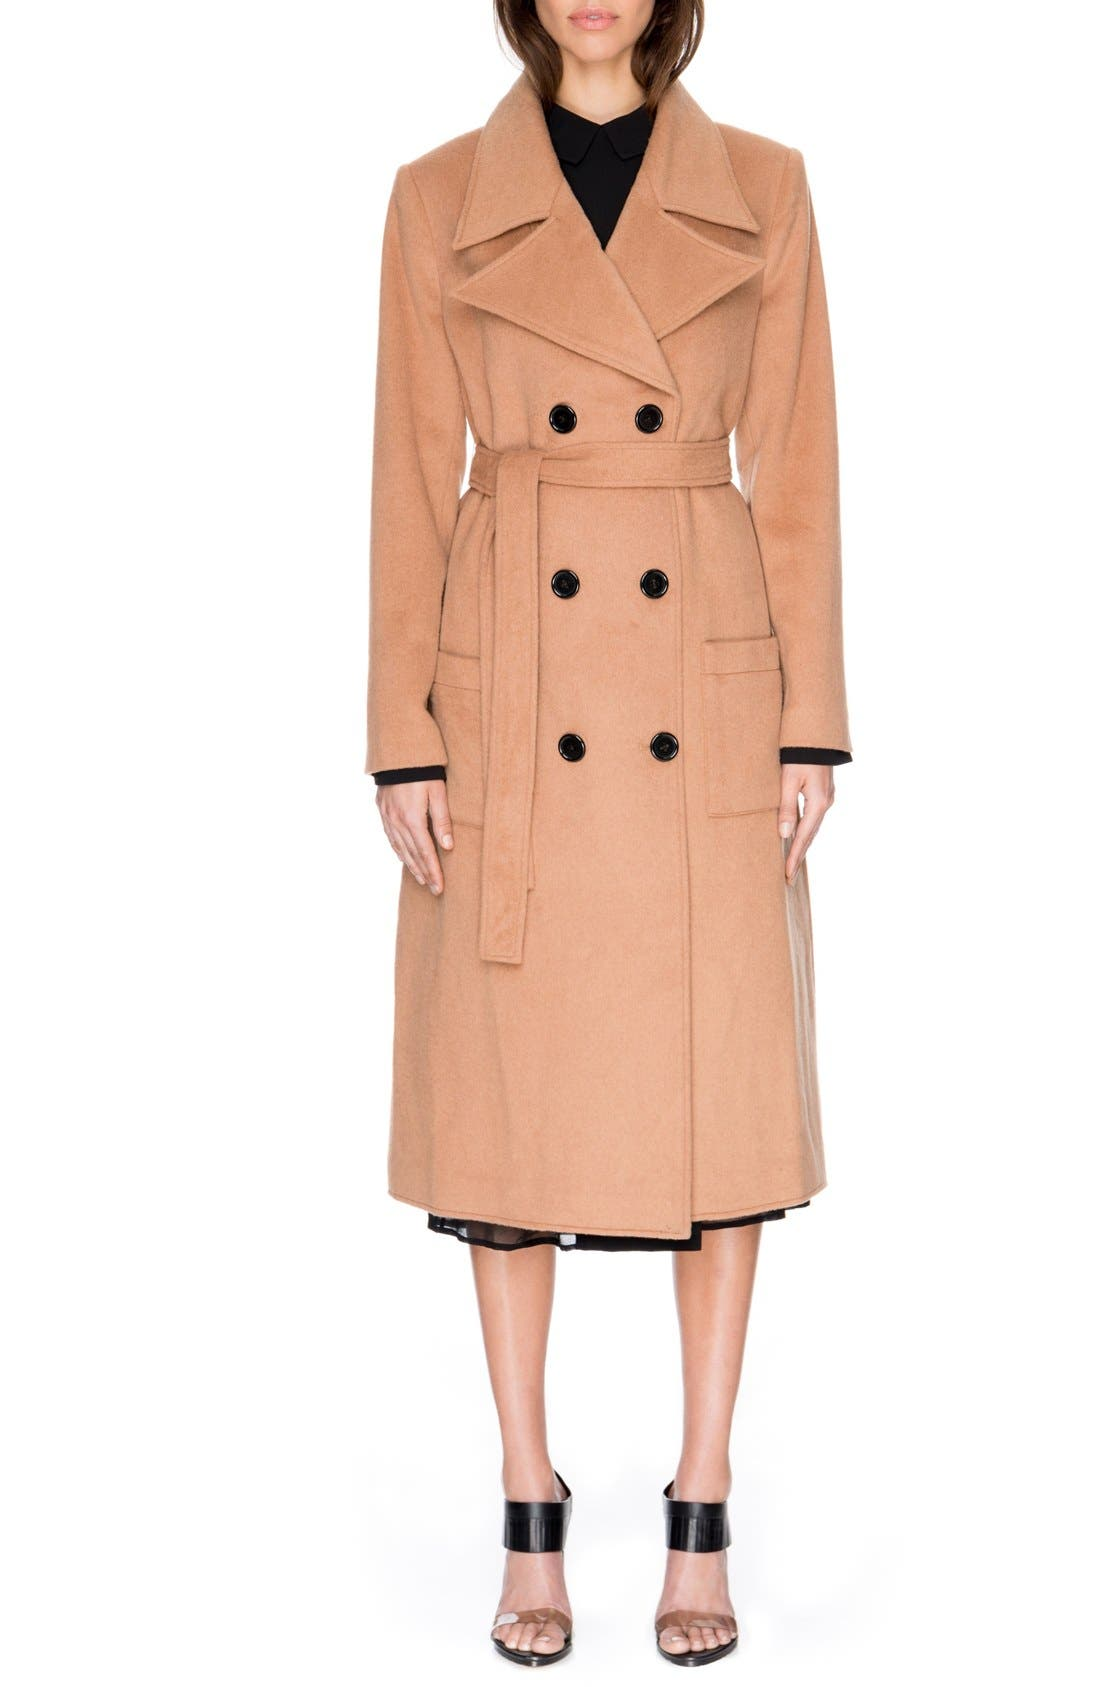 Alternate Image 1 Selected - C/MEO Collective 'The Glory' Wool Blend Trench Coat